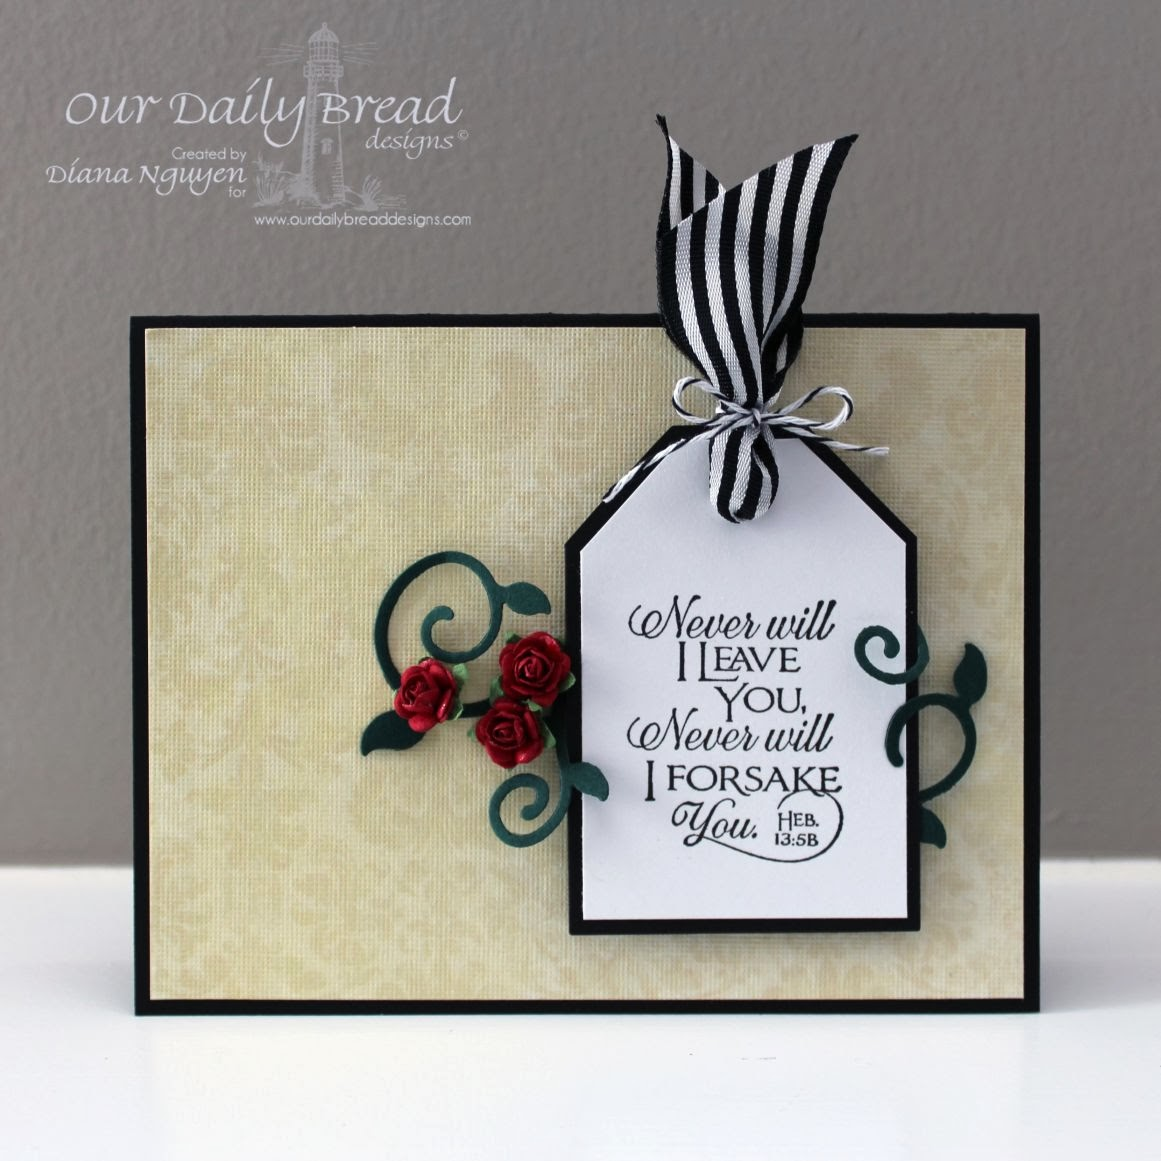 Diana Nguyen, CAS, Our Daily Bread Designs, handmade cards, scripture